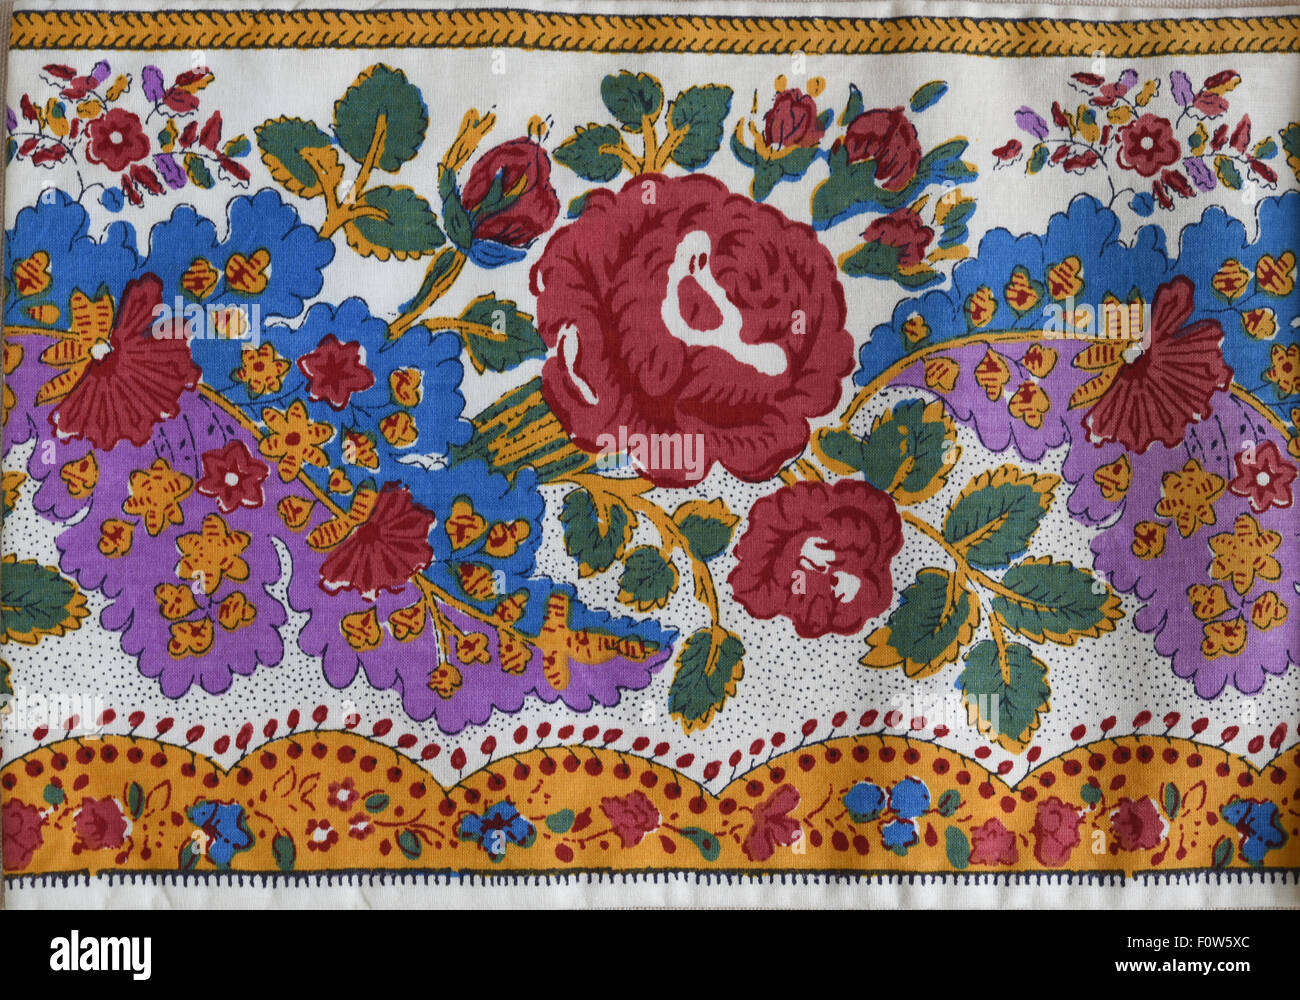 Souleiado Provencal cotton border fabric designed and produced in France. - Stock Image